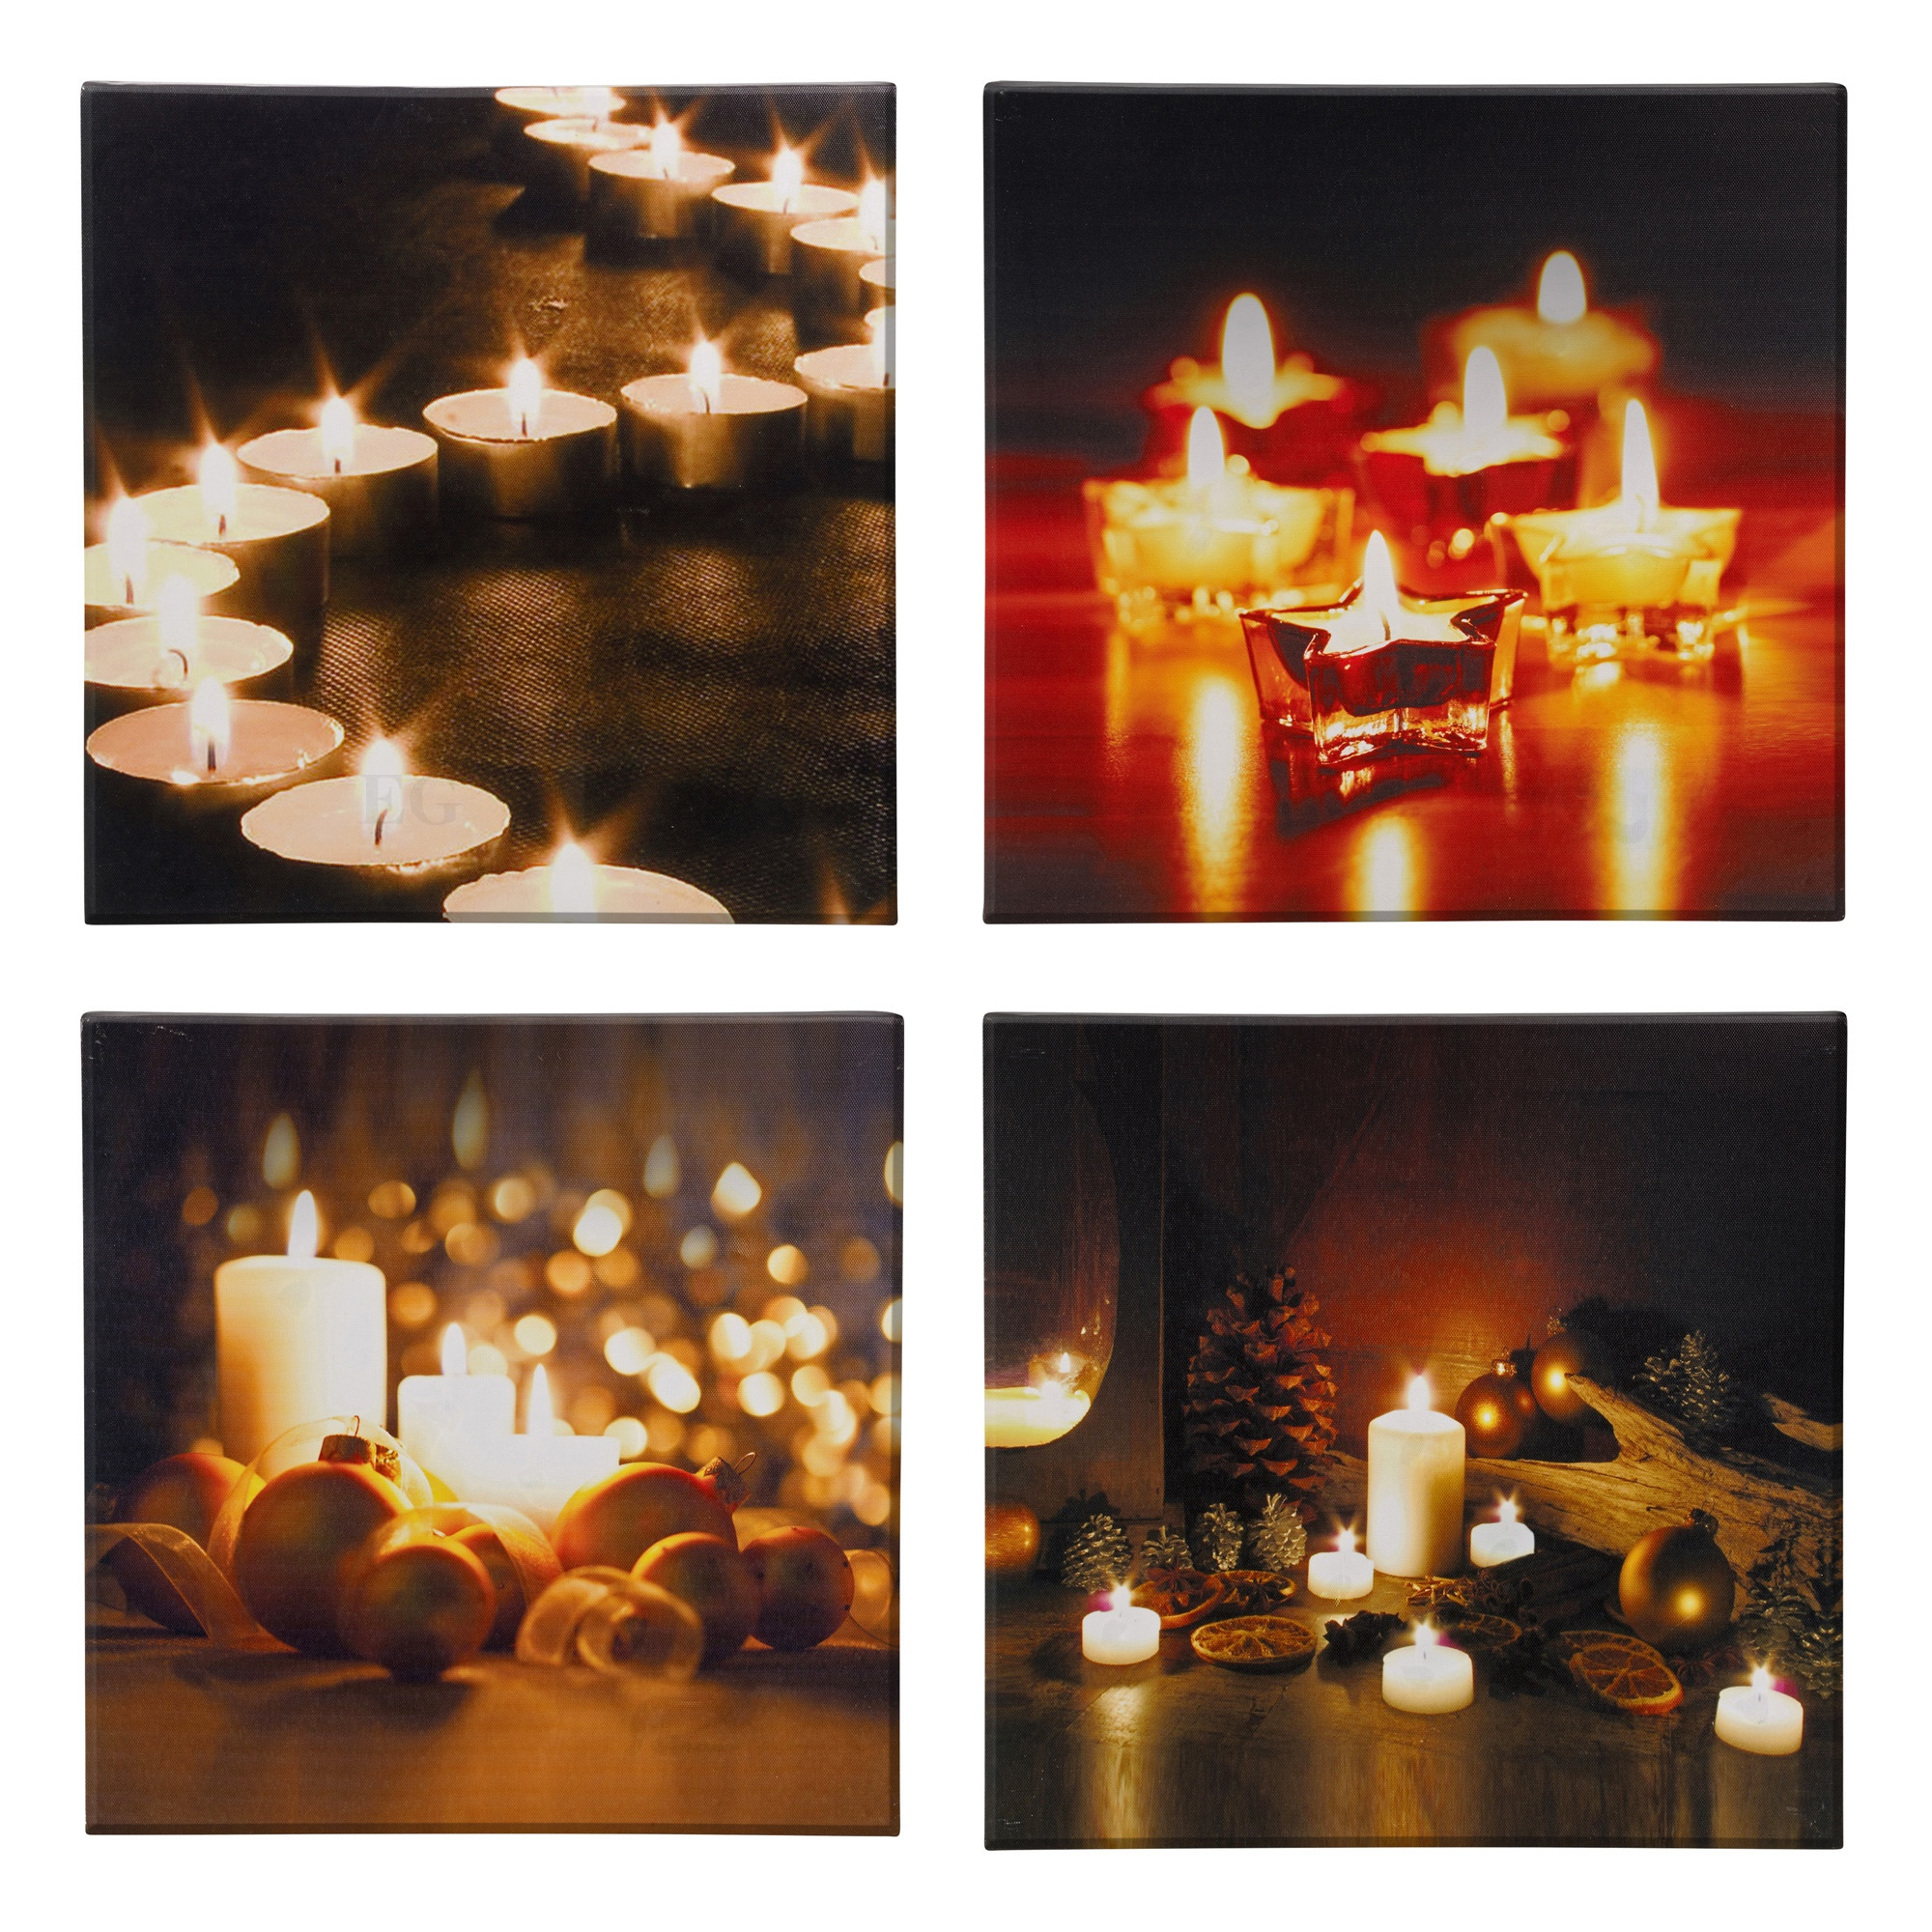 LED Light Flickering Candles Canvas Picture Flicker Wall Hanging Mounted Xmas eBay